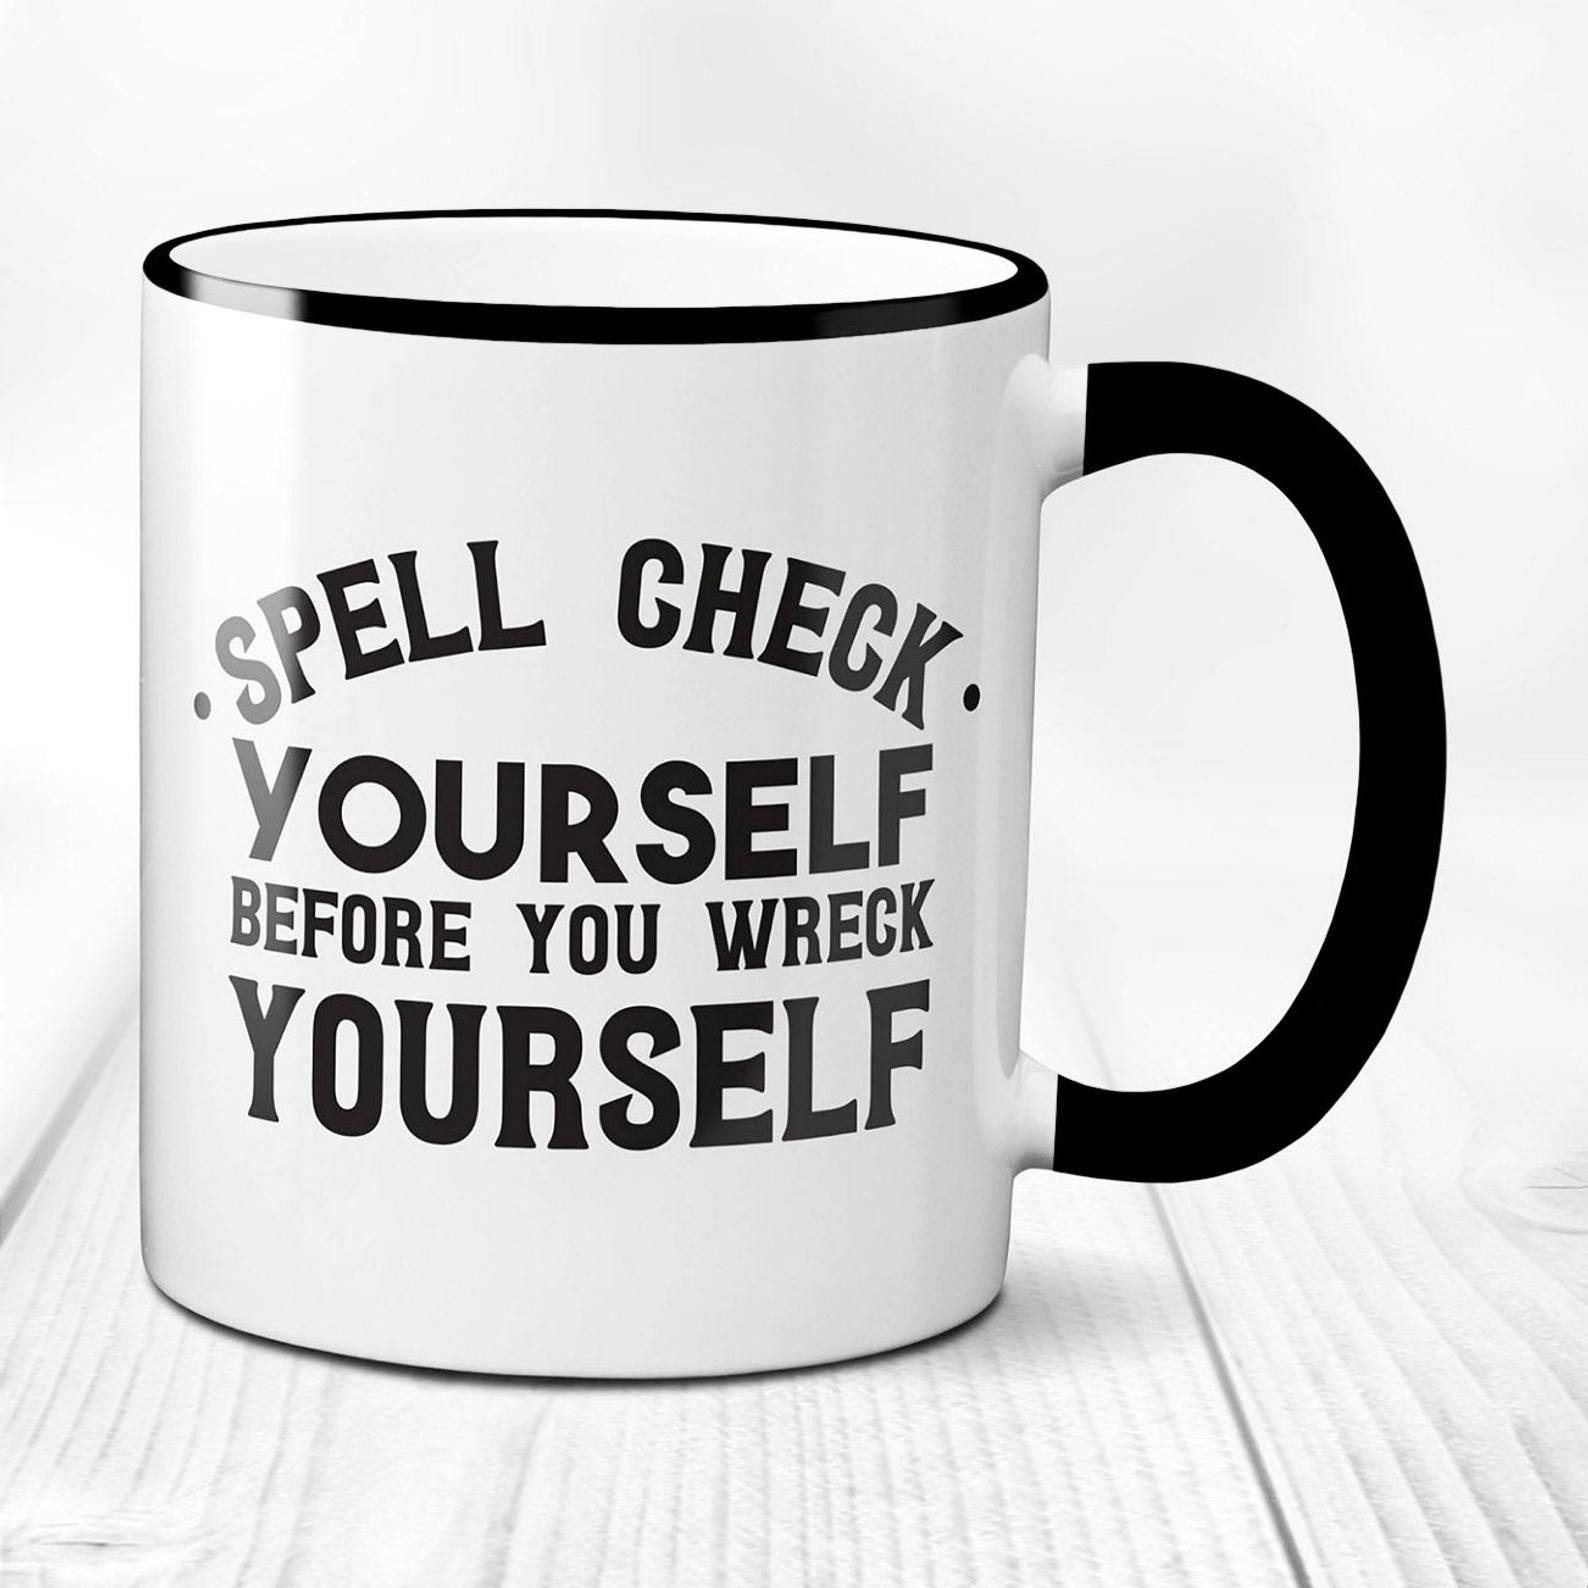 """A mug that reads """"Spell check yourself before you wreck yourself."""" The mug is white with a black handle."""